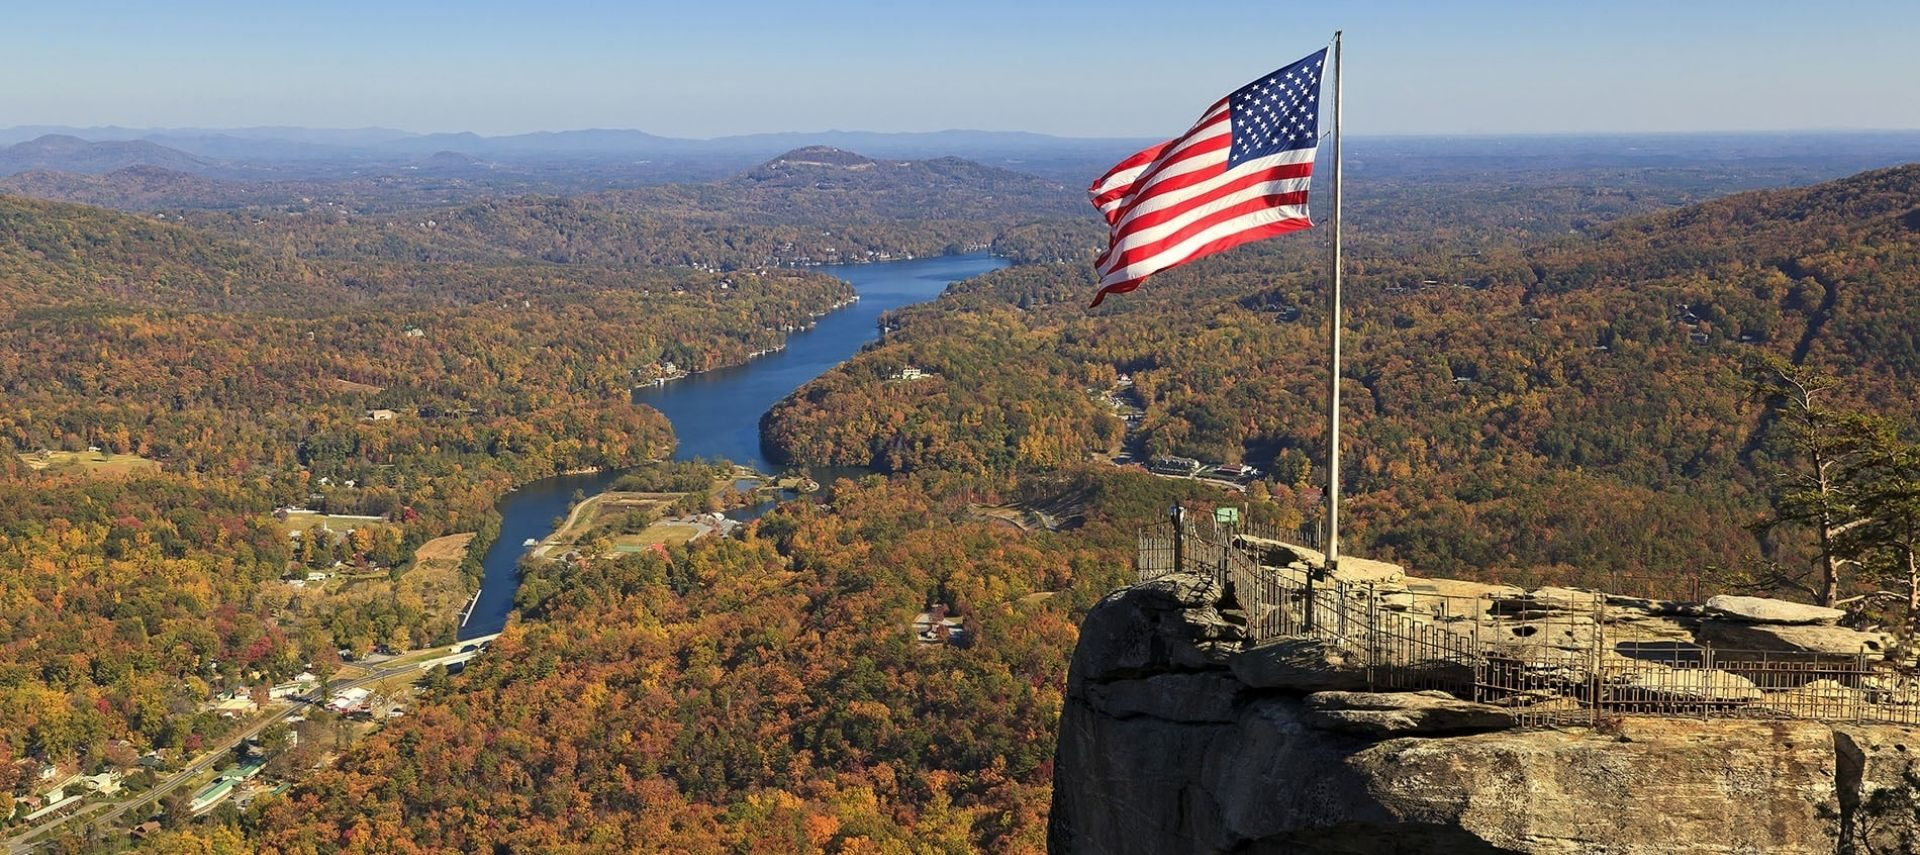 Top of Chimney Rock in NC with flag pole on an rocky outcrop with an aerial view of Asheville and the surrounding area